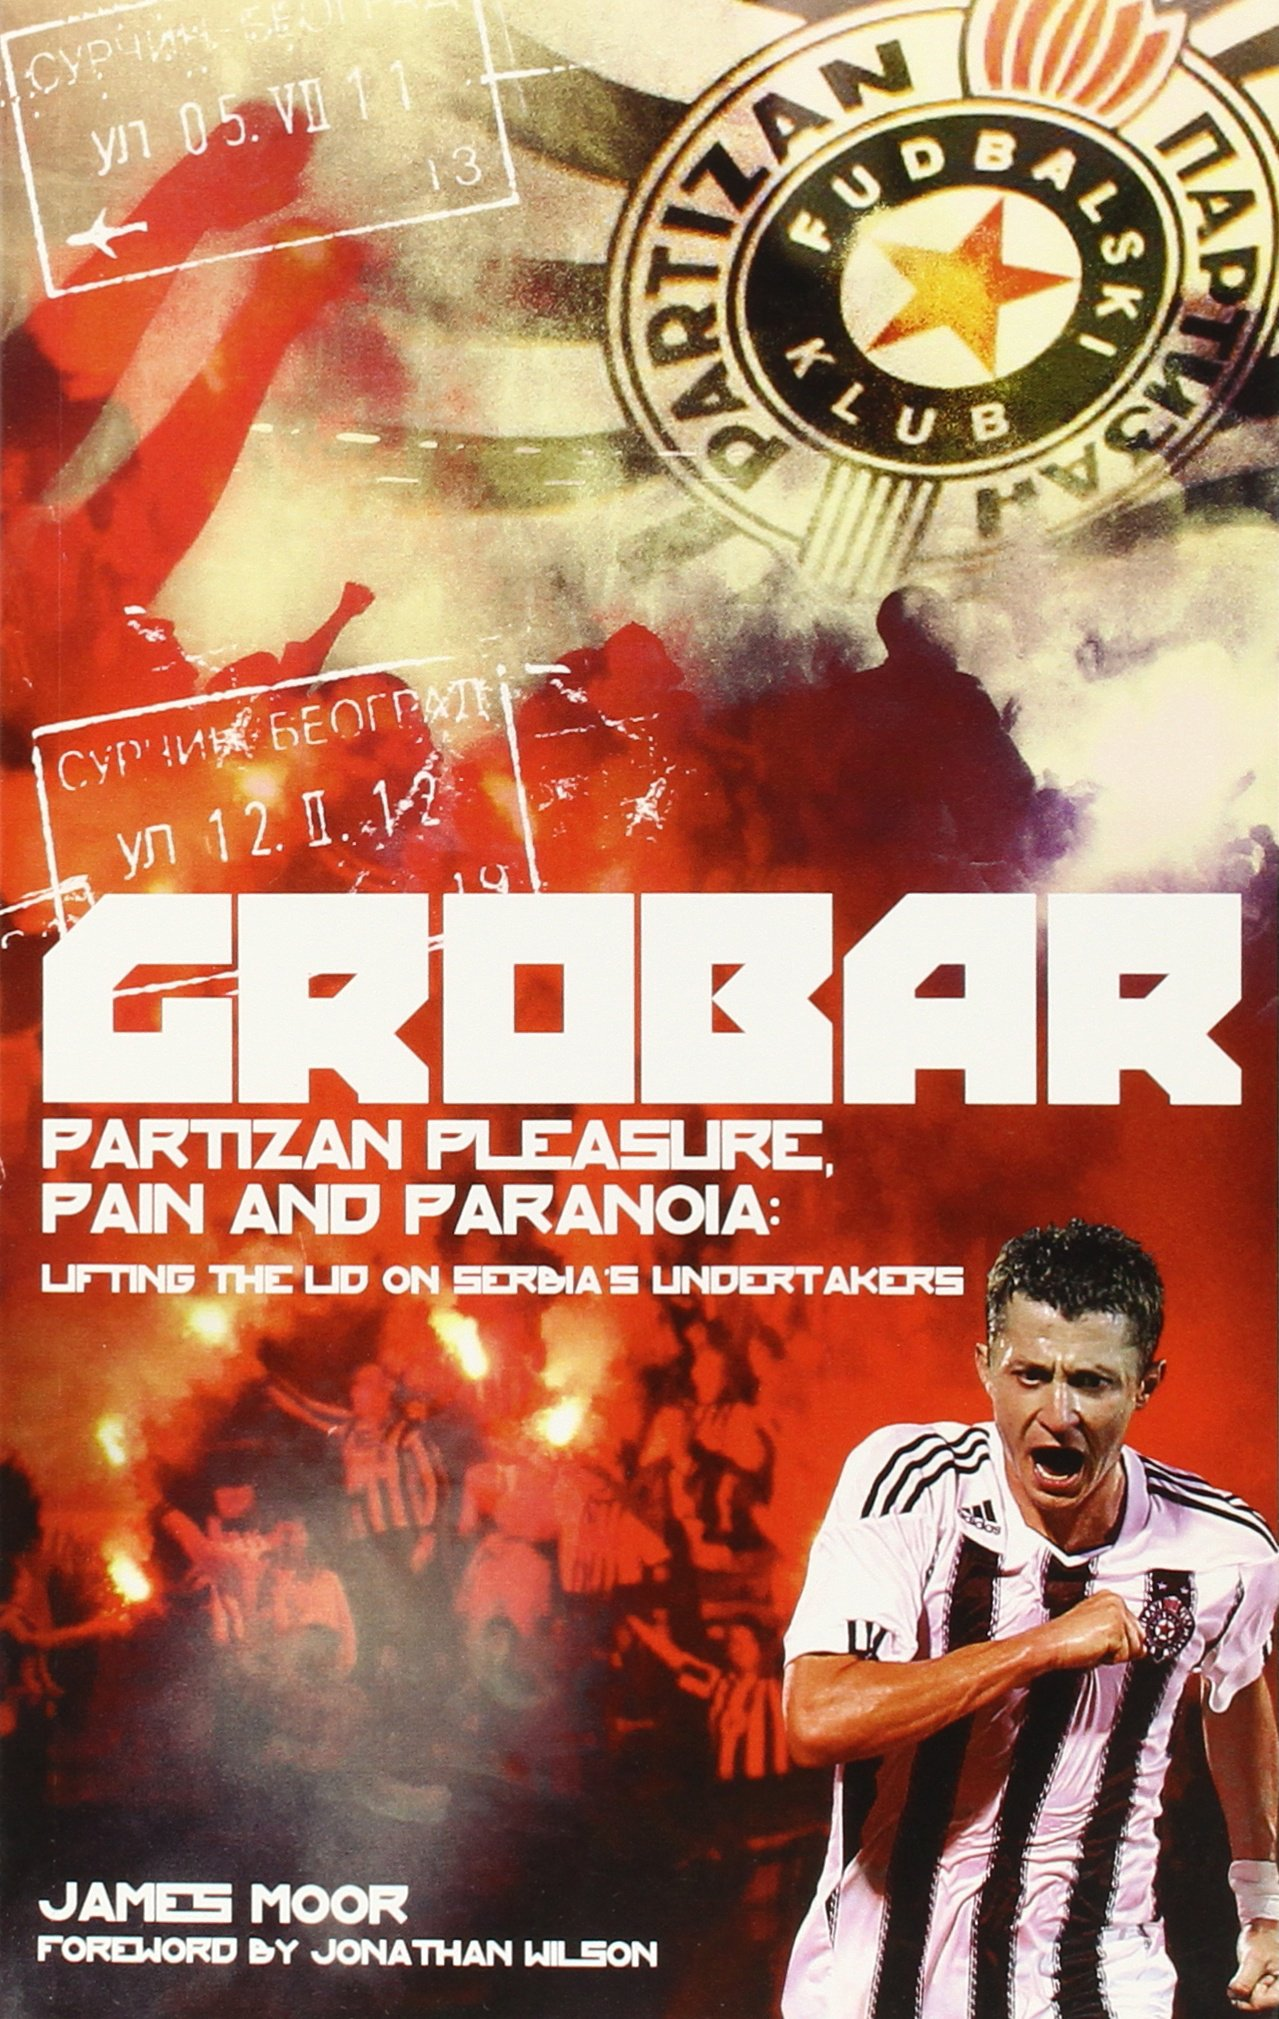 Image OfGrobar: Partizan Pleasure, Pain And Paranoia: Lifting The Lid On Serbia's Undertakers